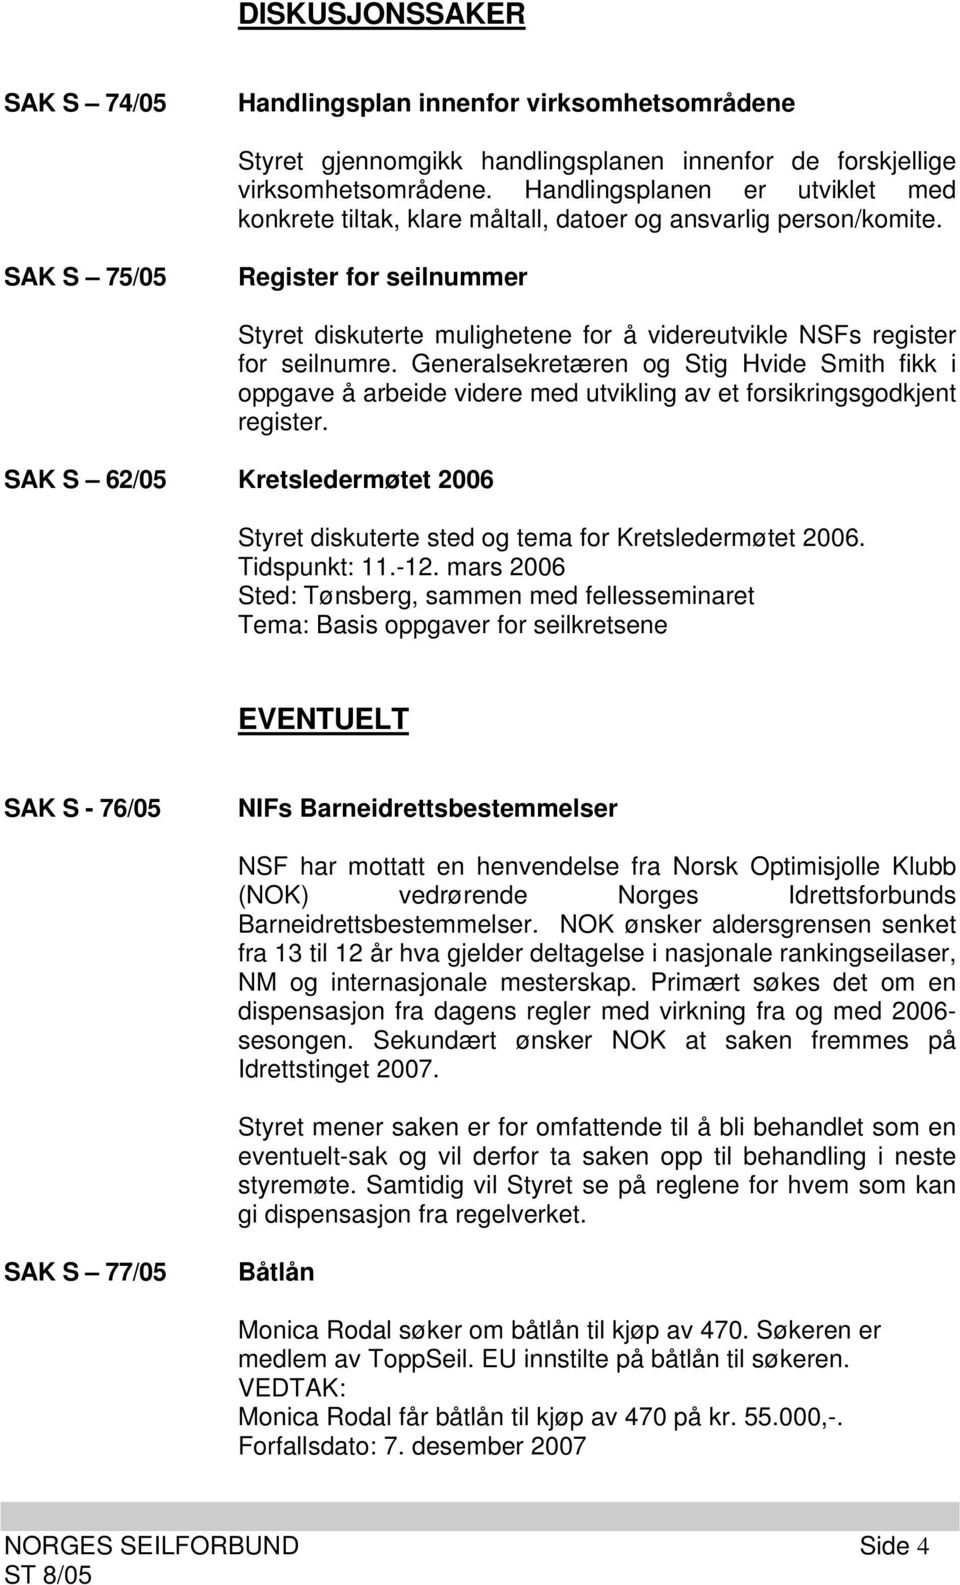 SAK S 75/05 Register for seilnummer Styret diskuterte mulighetene for å videreutvikle NSFs register for seilnumre.